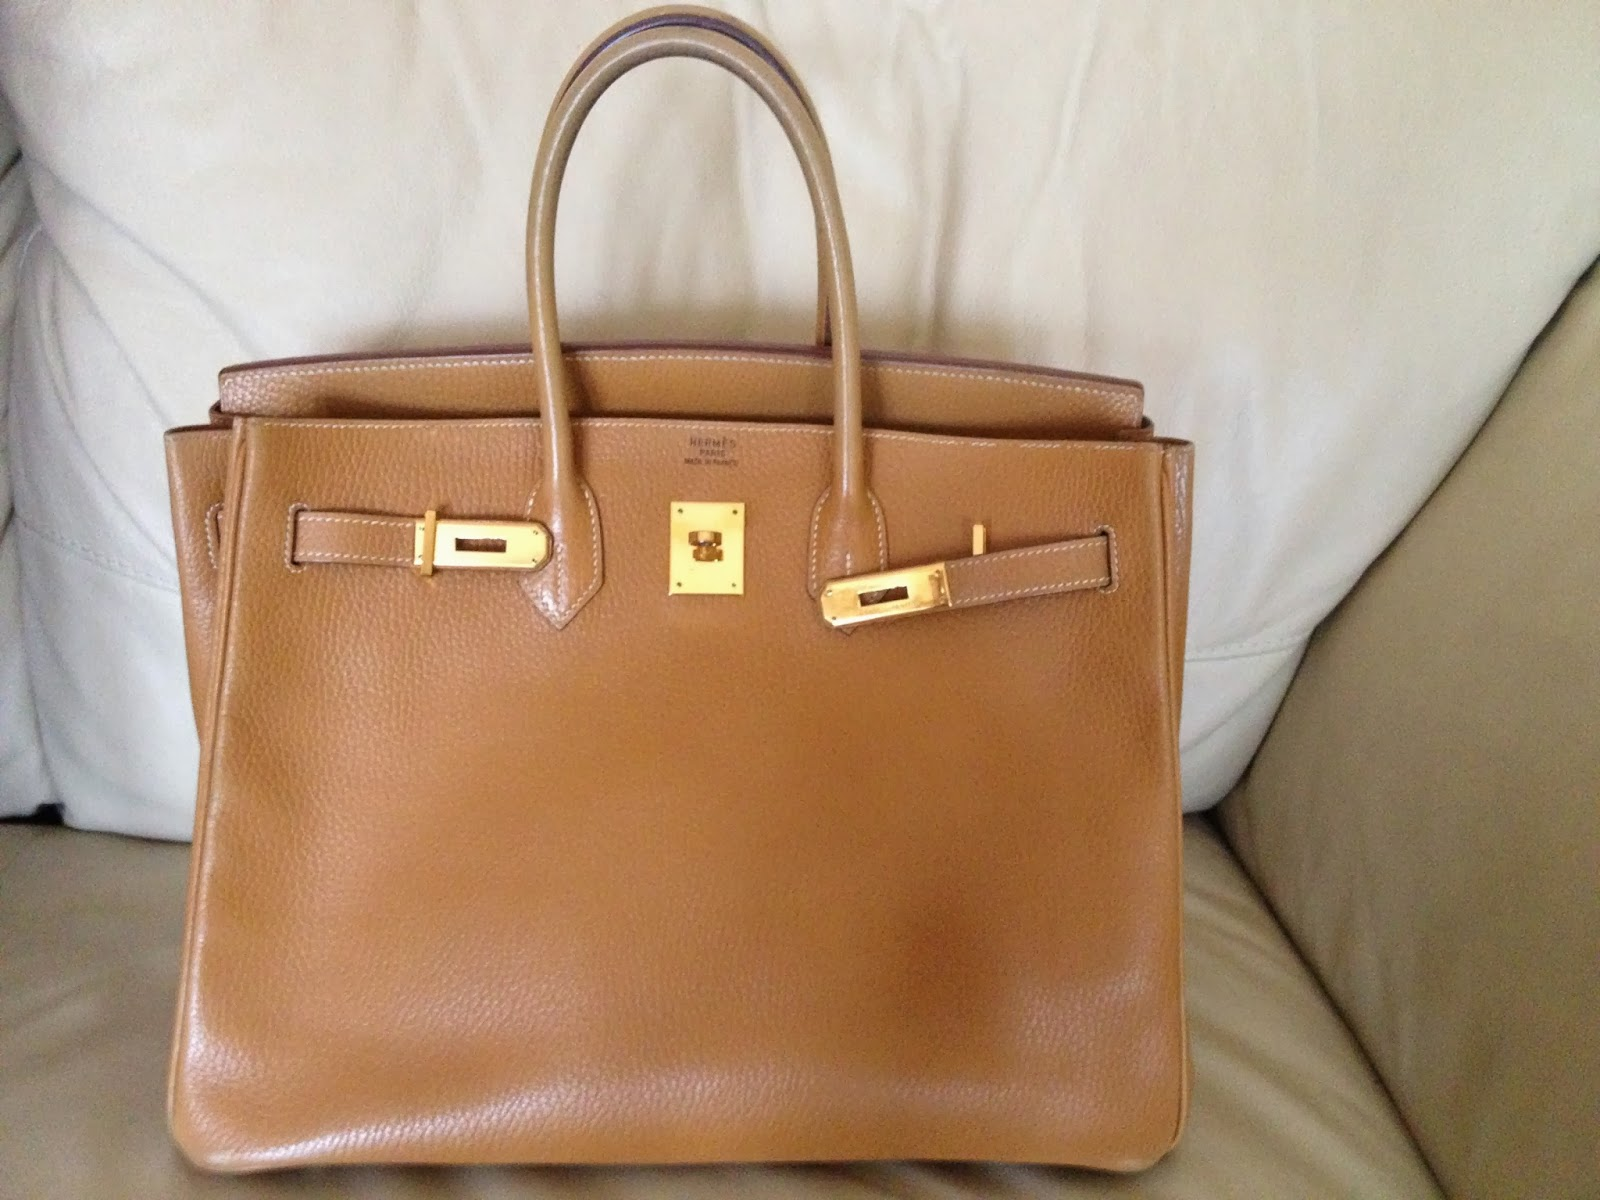 how much is a birkin bag - How to spot a fake Birkin? | Whispersales